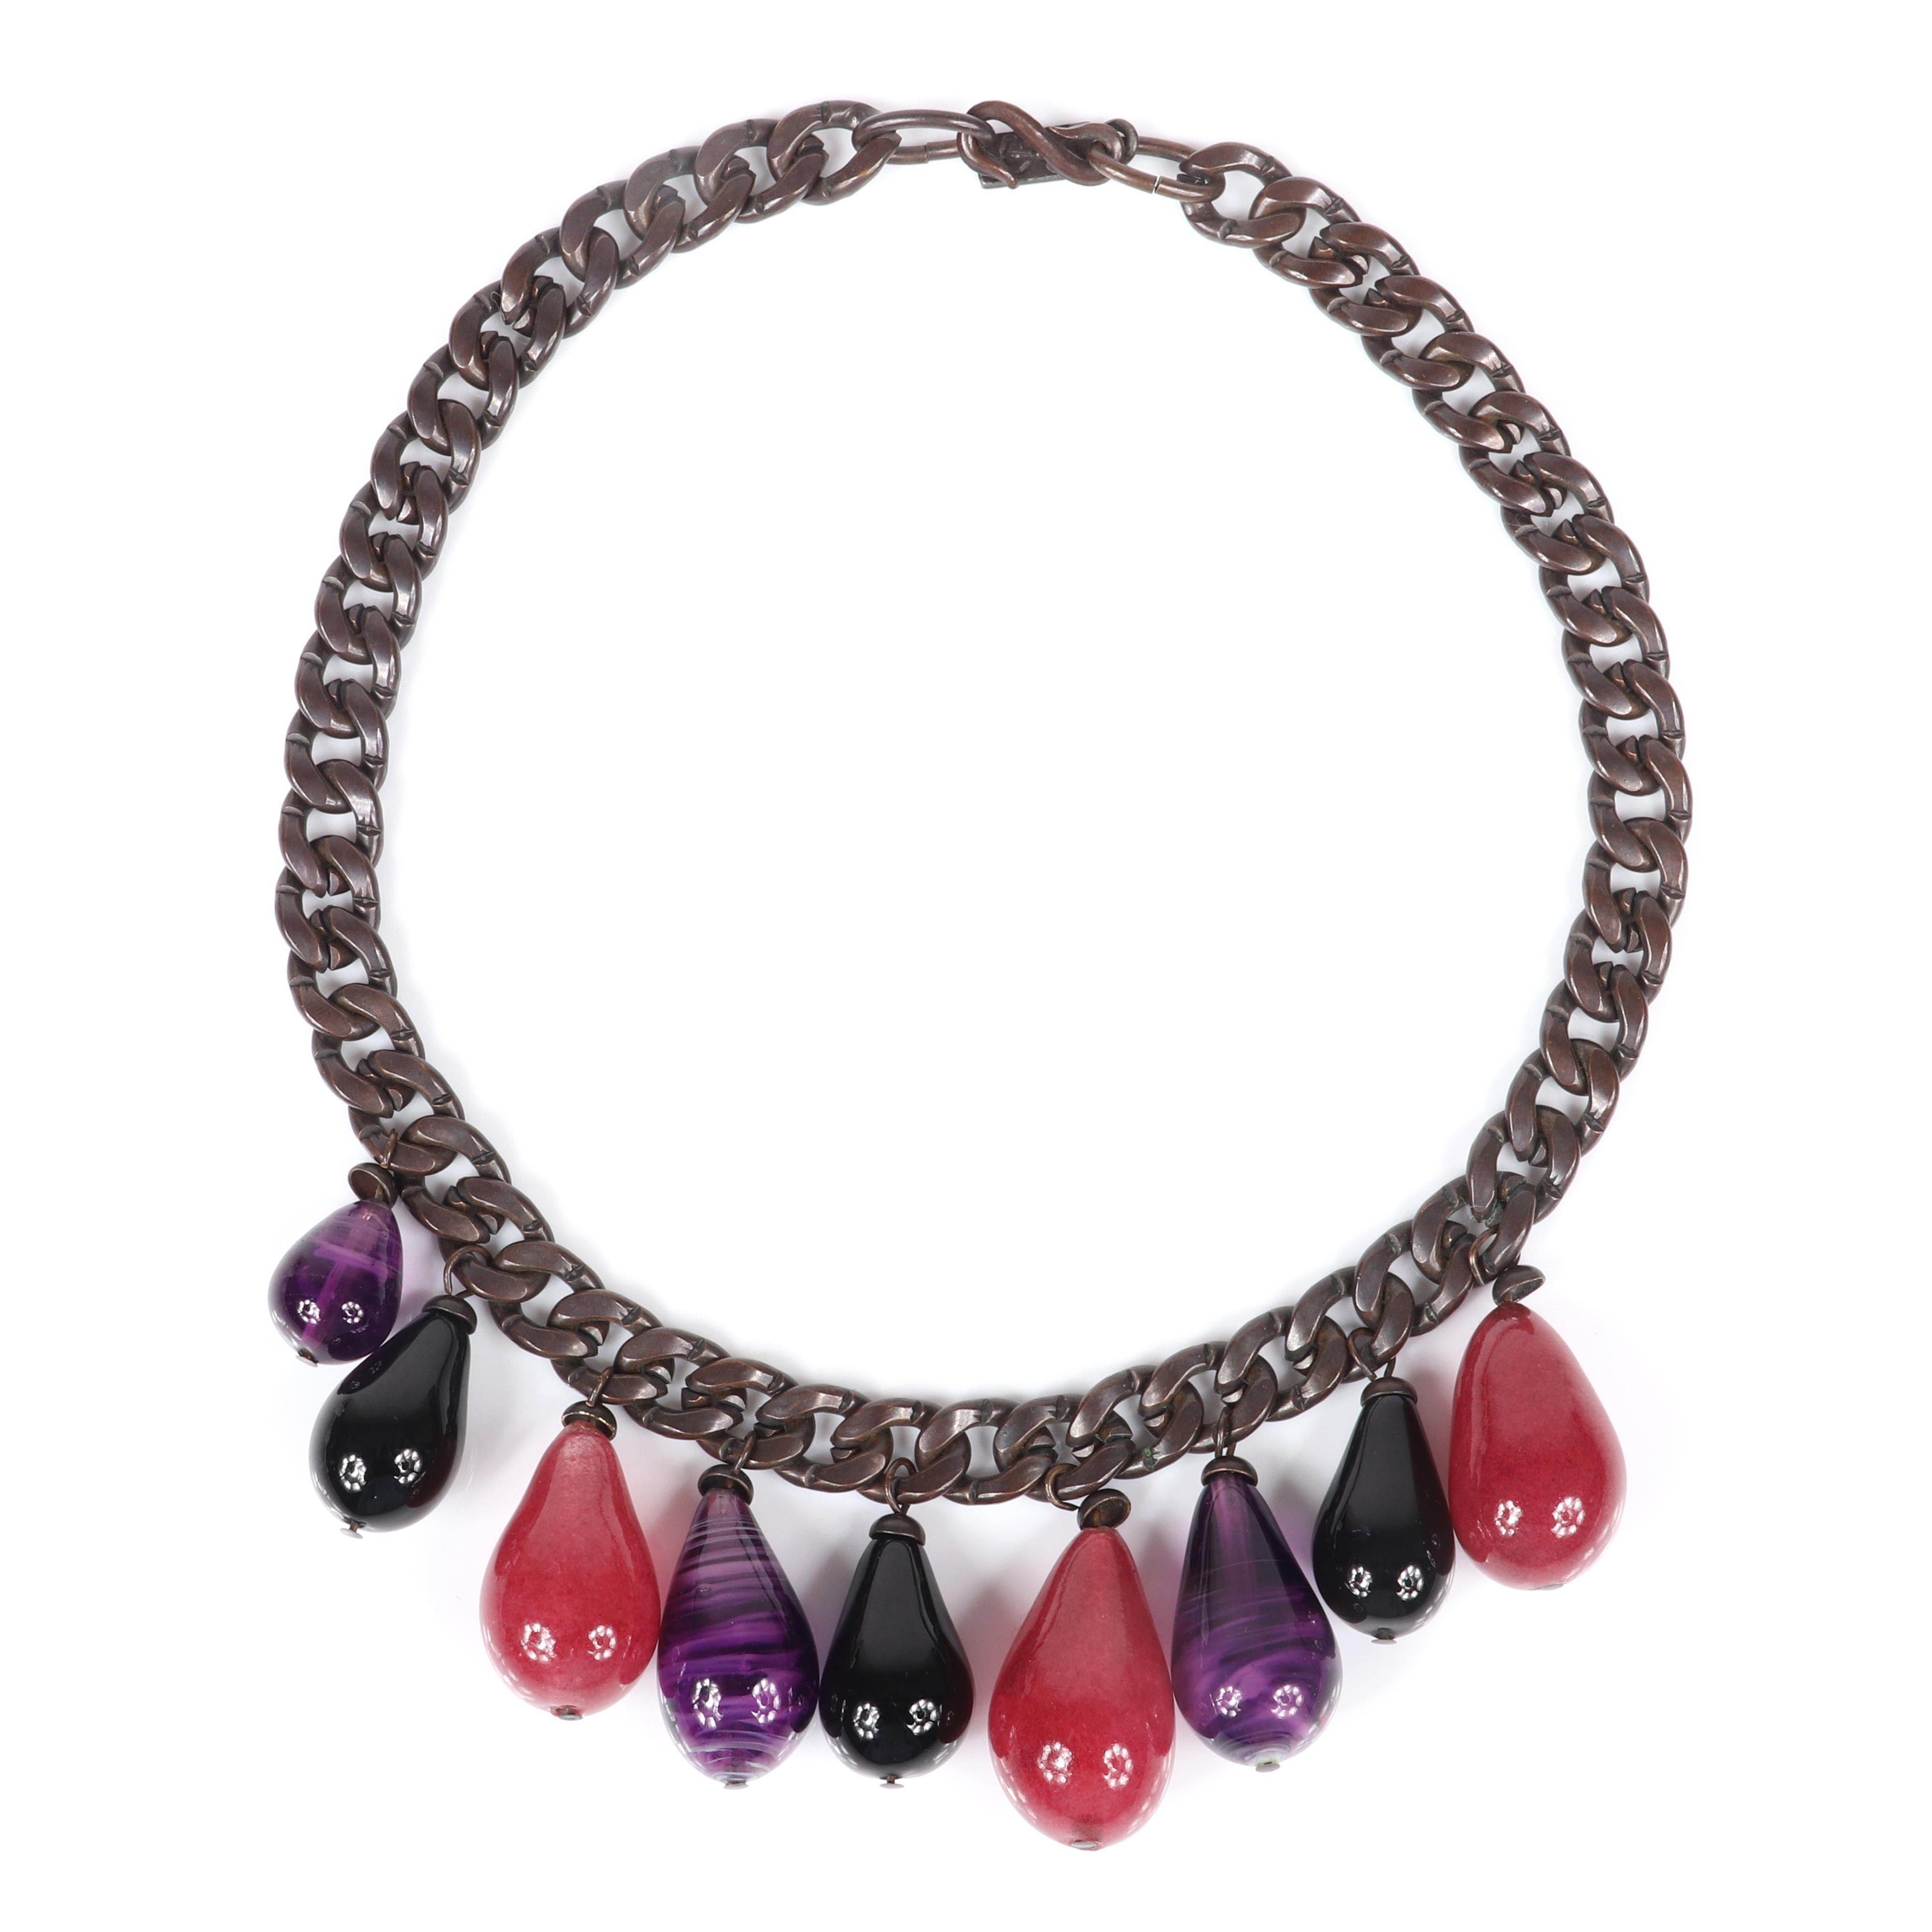 "Yves Saint Laurent YSL early designer couture chunky gunmetal flat chain collar necklace with nine poured gripoix? art glass teardrop dangles, cranberry, black, and variegated amethyst. 17""L, 1 3/4""drop"